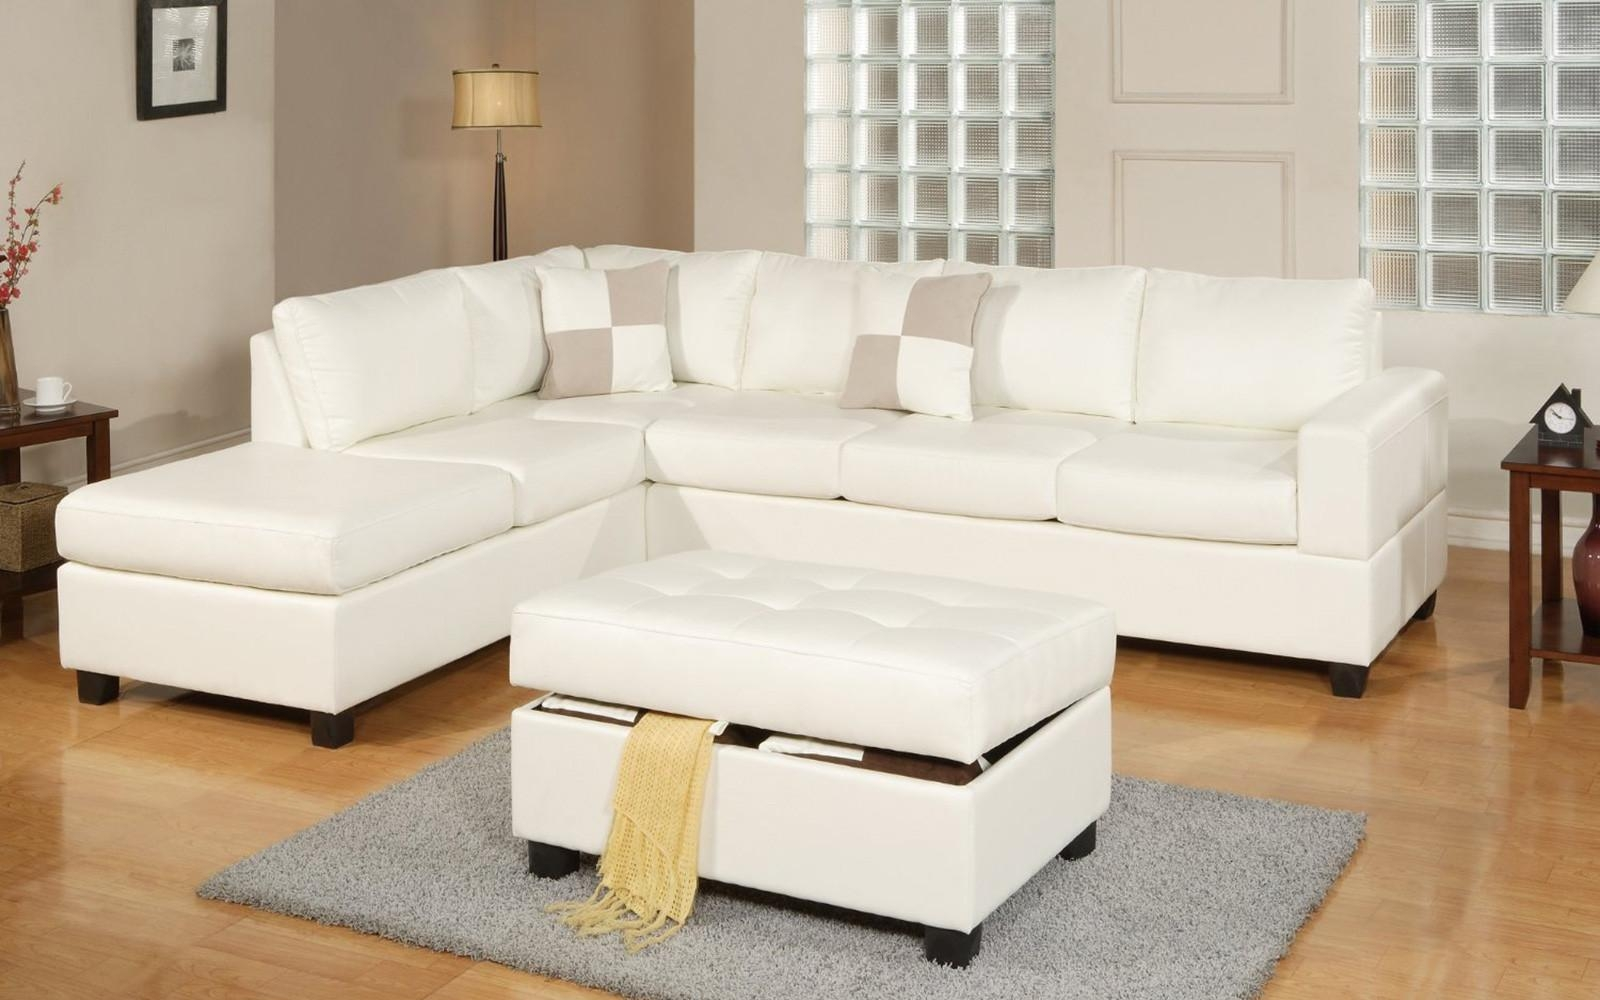 3 Piece Modern Reversible Tufted Bonded Leather Sectional Sofa in Sofa With Chaise And Ottoman